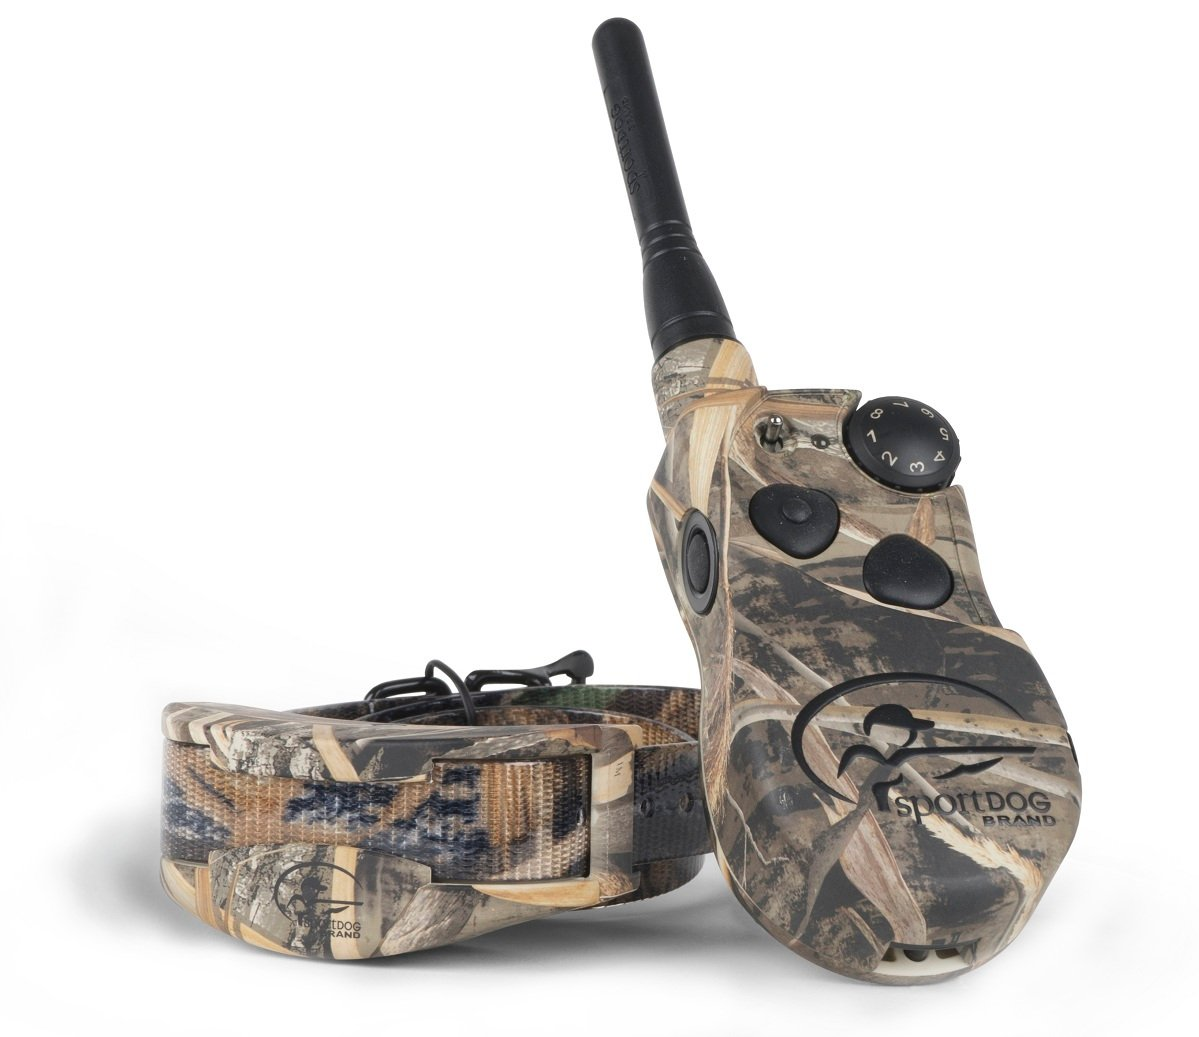 SportDOG Brand WetlandHunter 1825 Remote Trainer - 1 Mile Range - Waterproof, Rechargeable Dog Training Collar in Camouflage with Tone, Vibration, and Shock